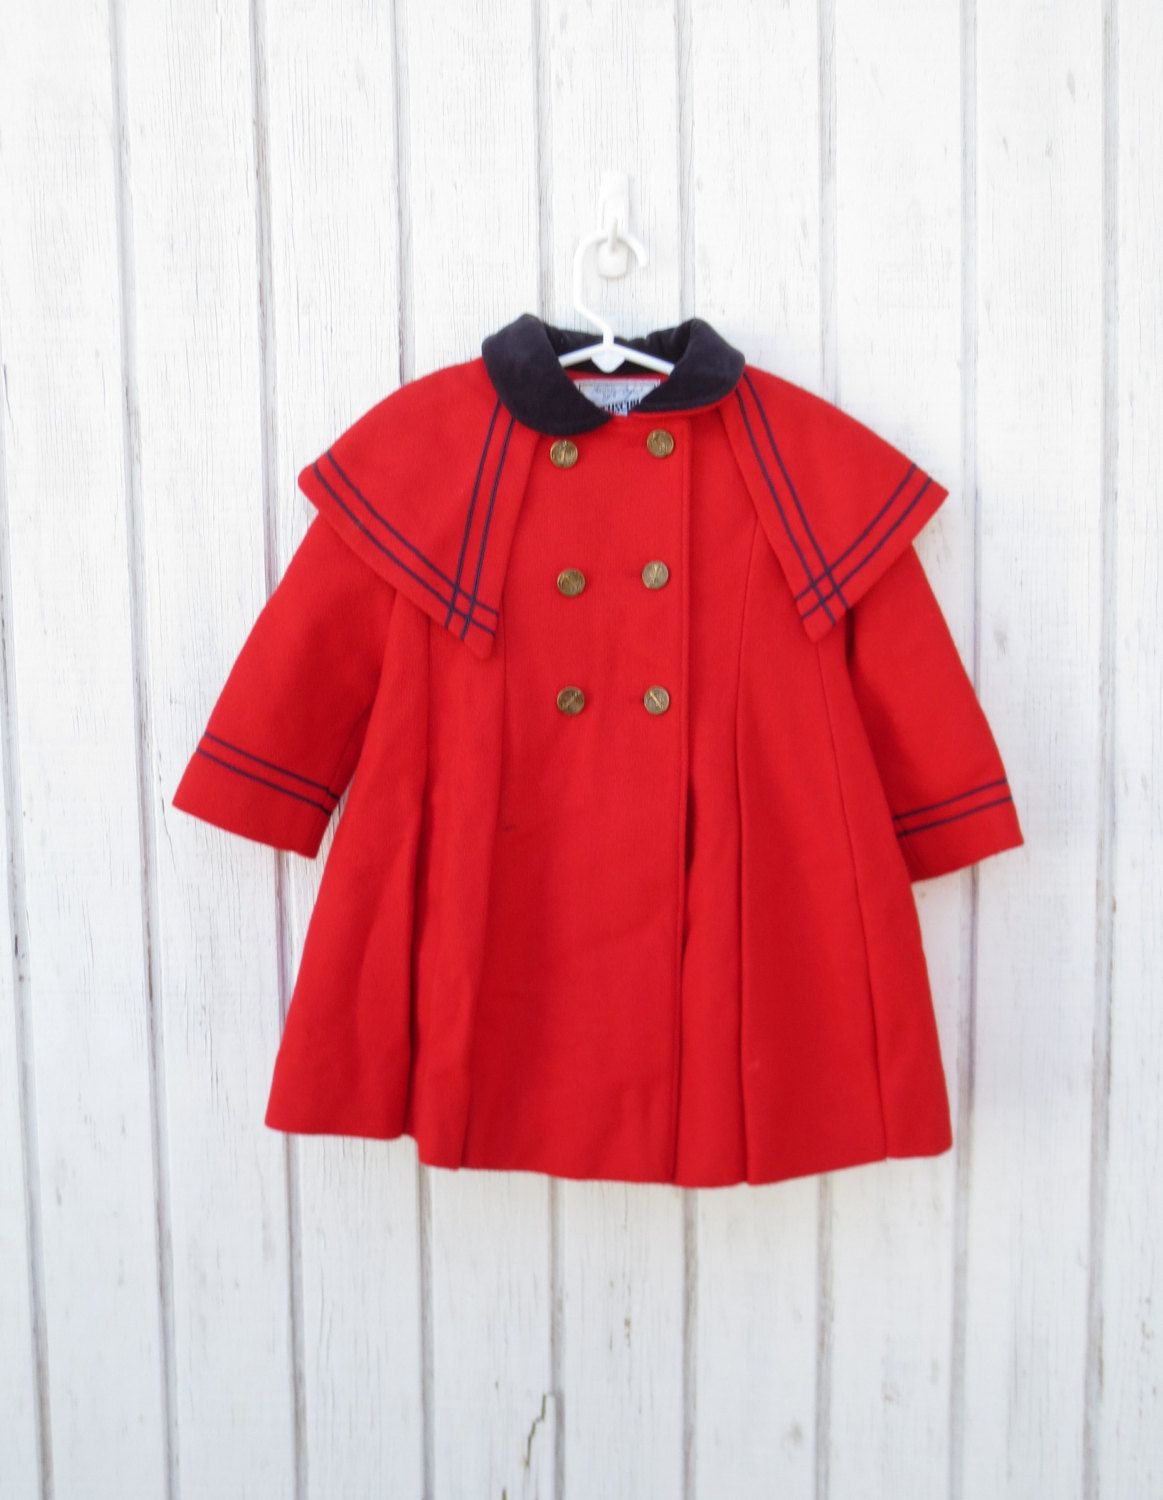 Vintage Children's Clothes 60s Girl's Jacket Red Coat Madeline ...